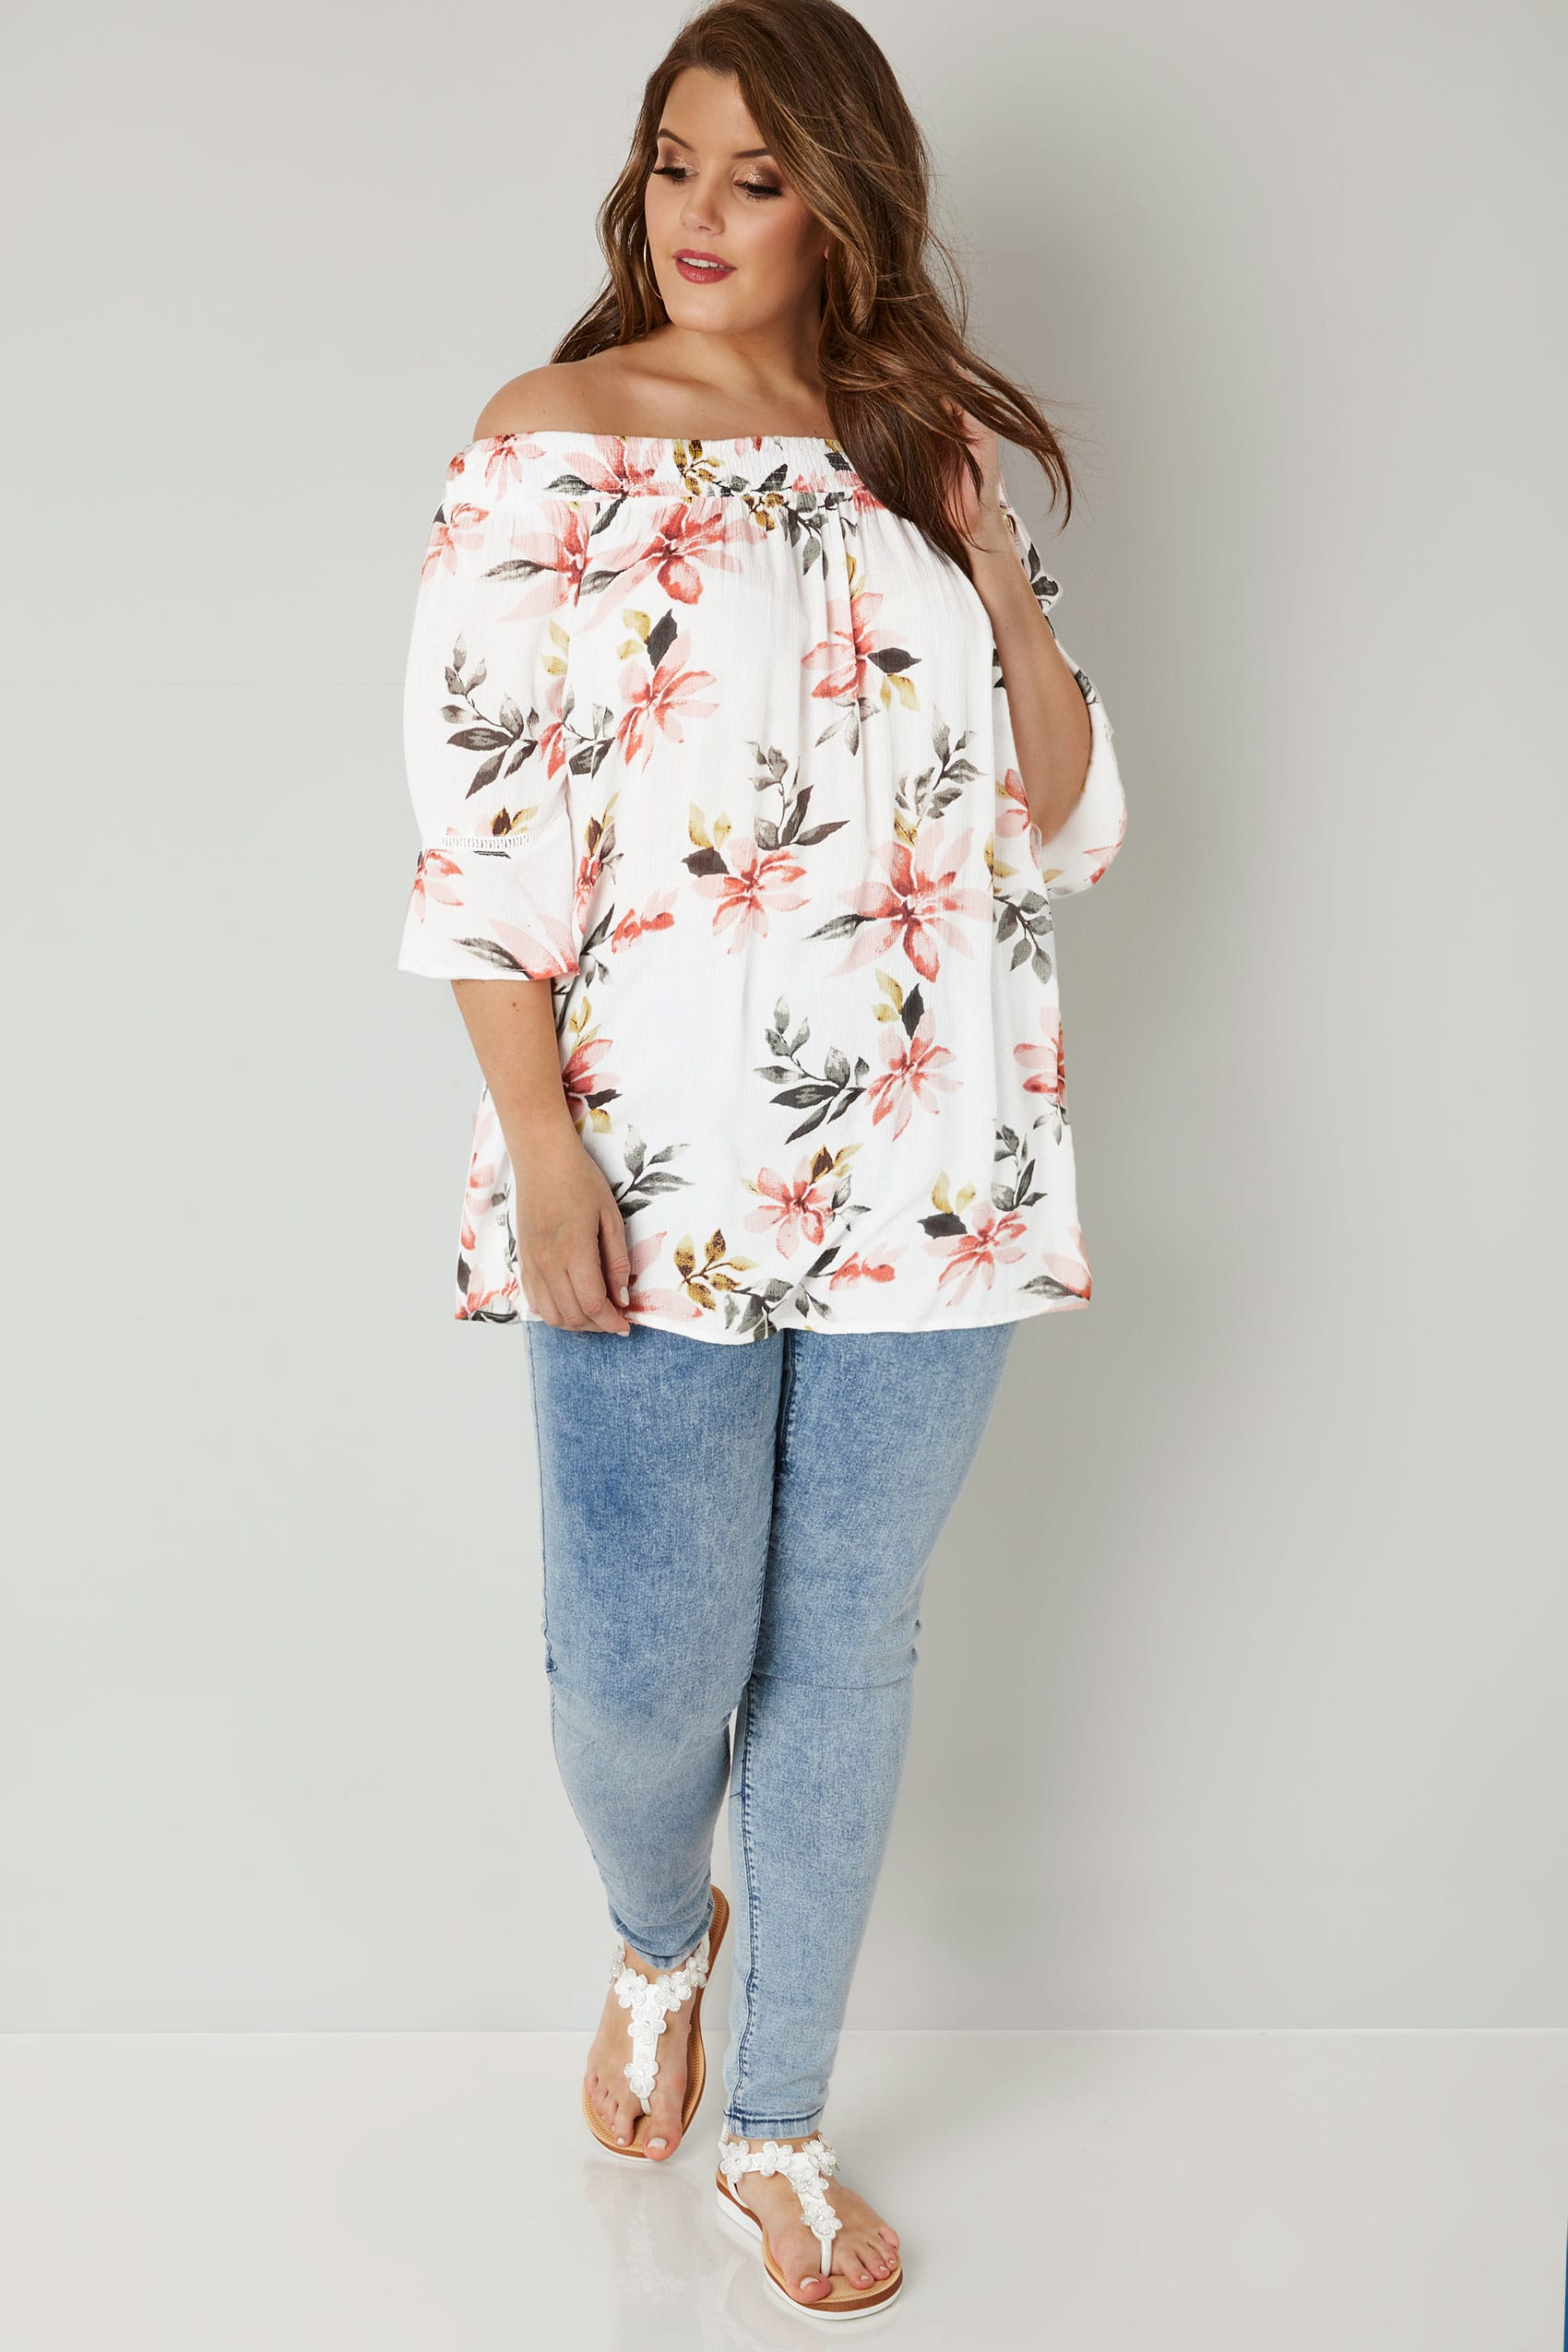 White Floral Print Gypsy Top With Flute Sleeves Plus Size